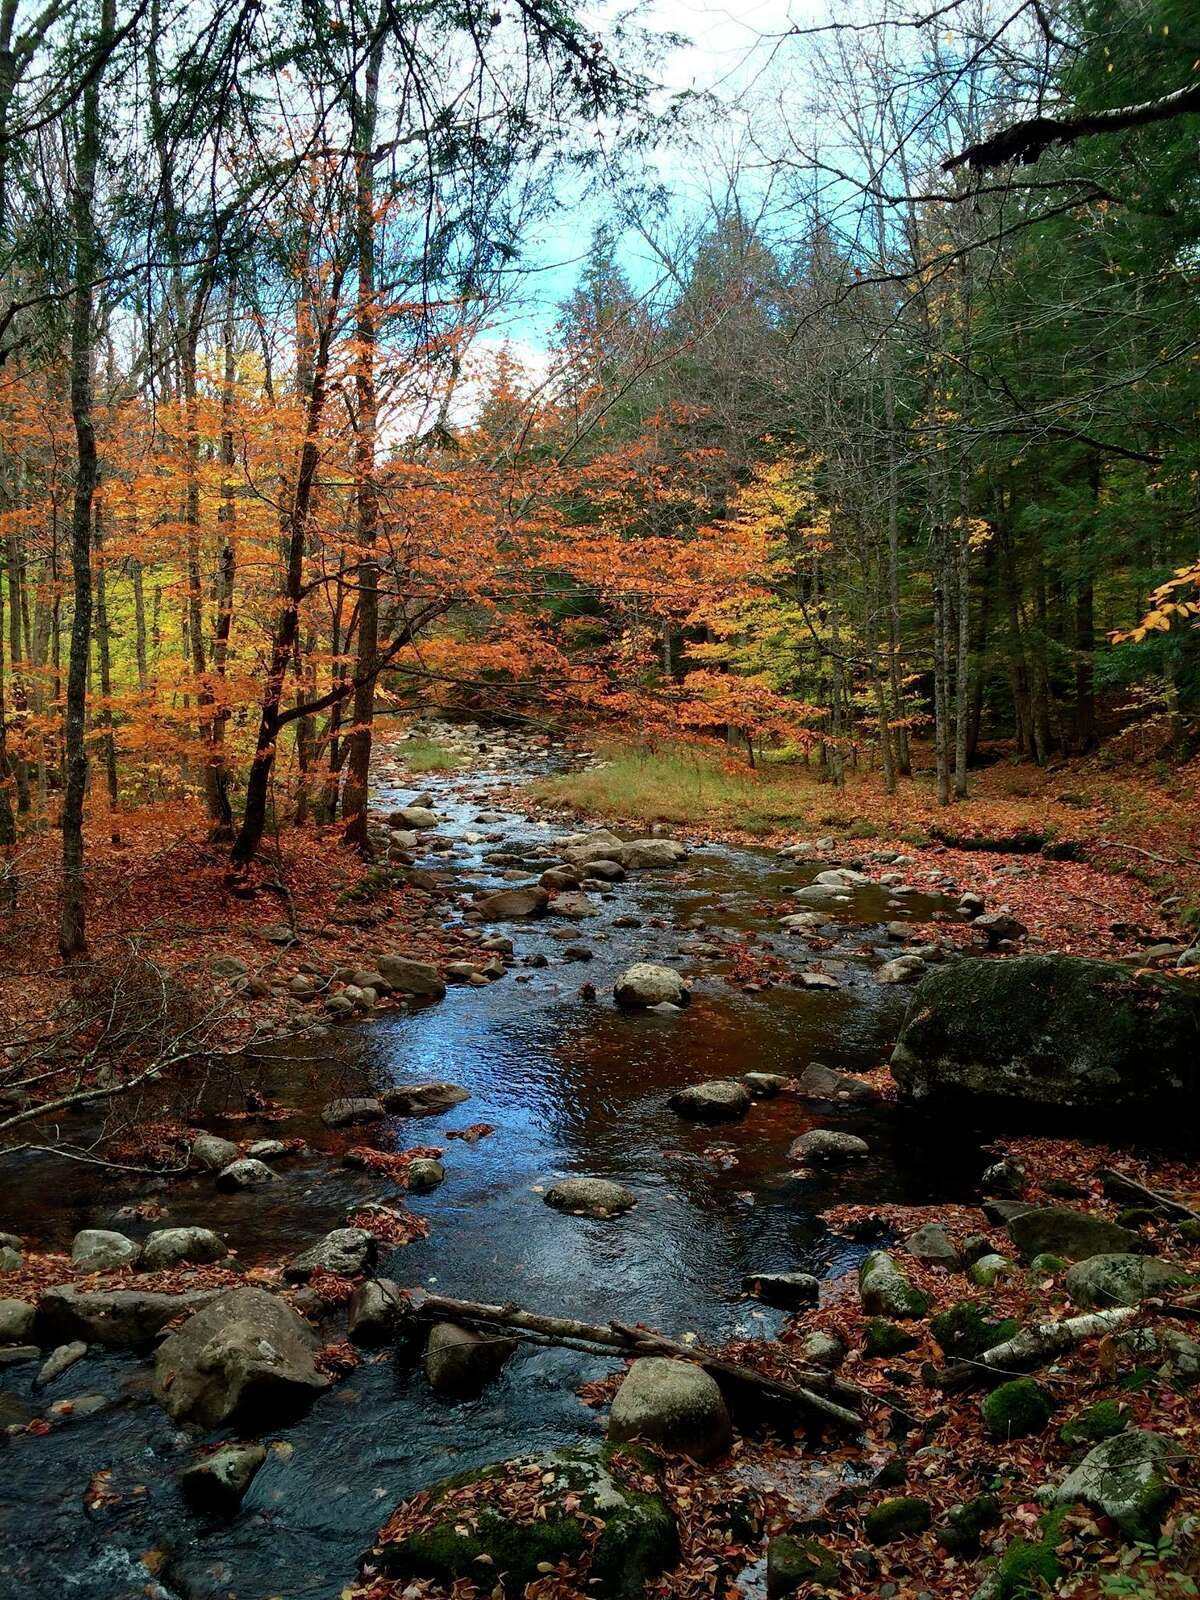 This Oct. 18, 2015, photo shows fall colors along East Stony Creek in the town of Hope, N.Y., along a road off Route 30 in the southern Adirondacks.